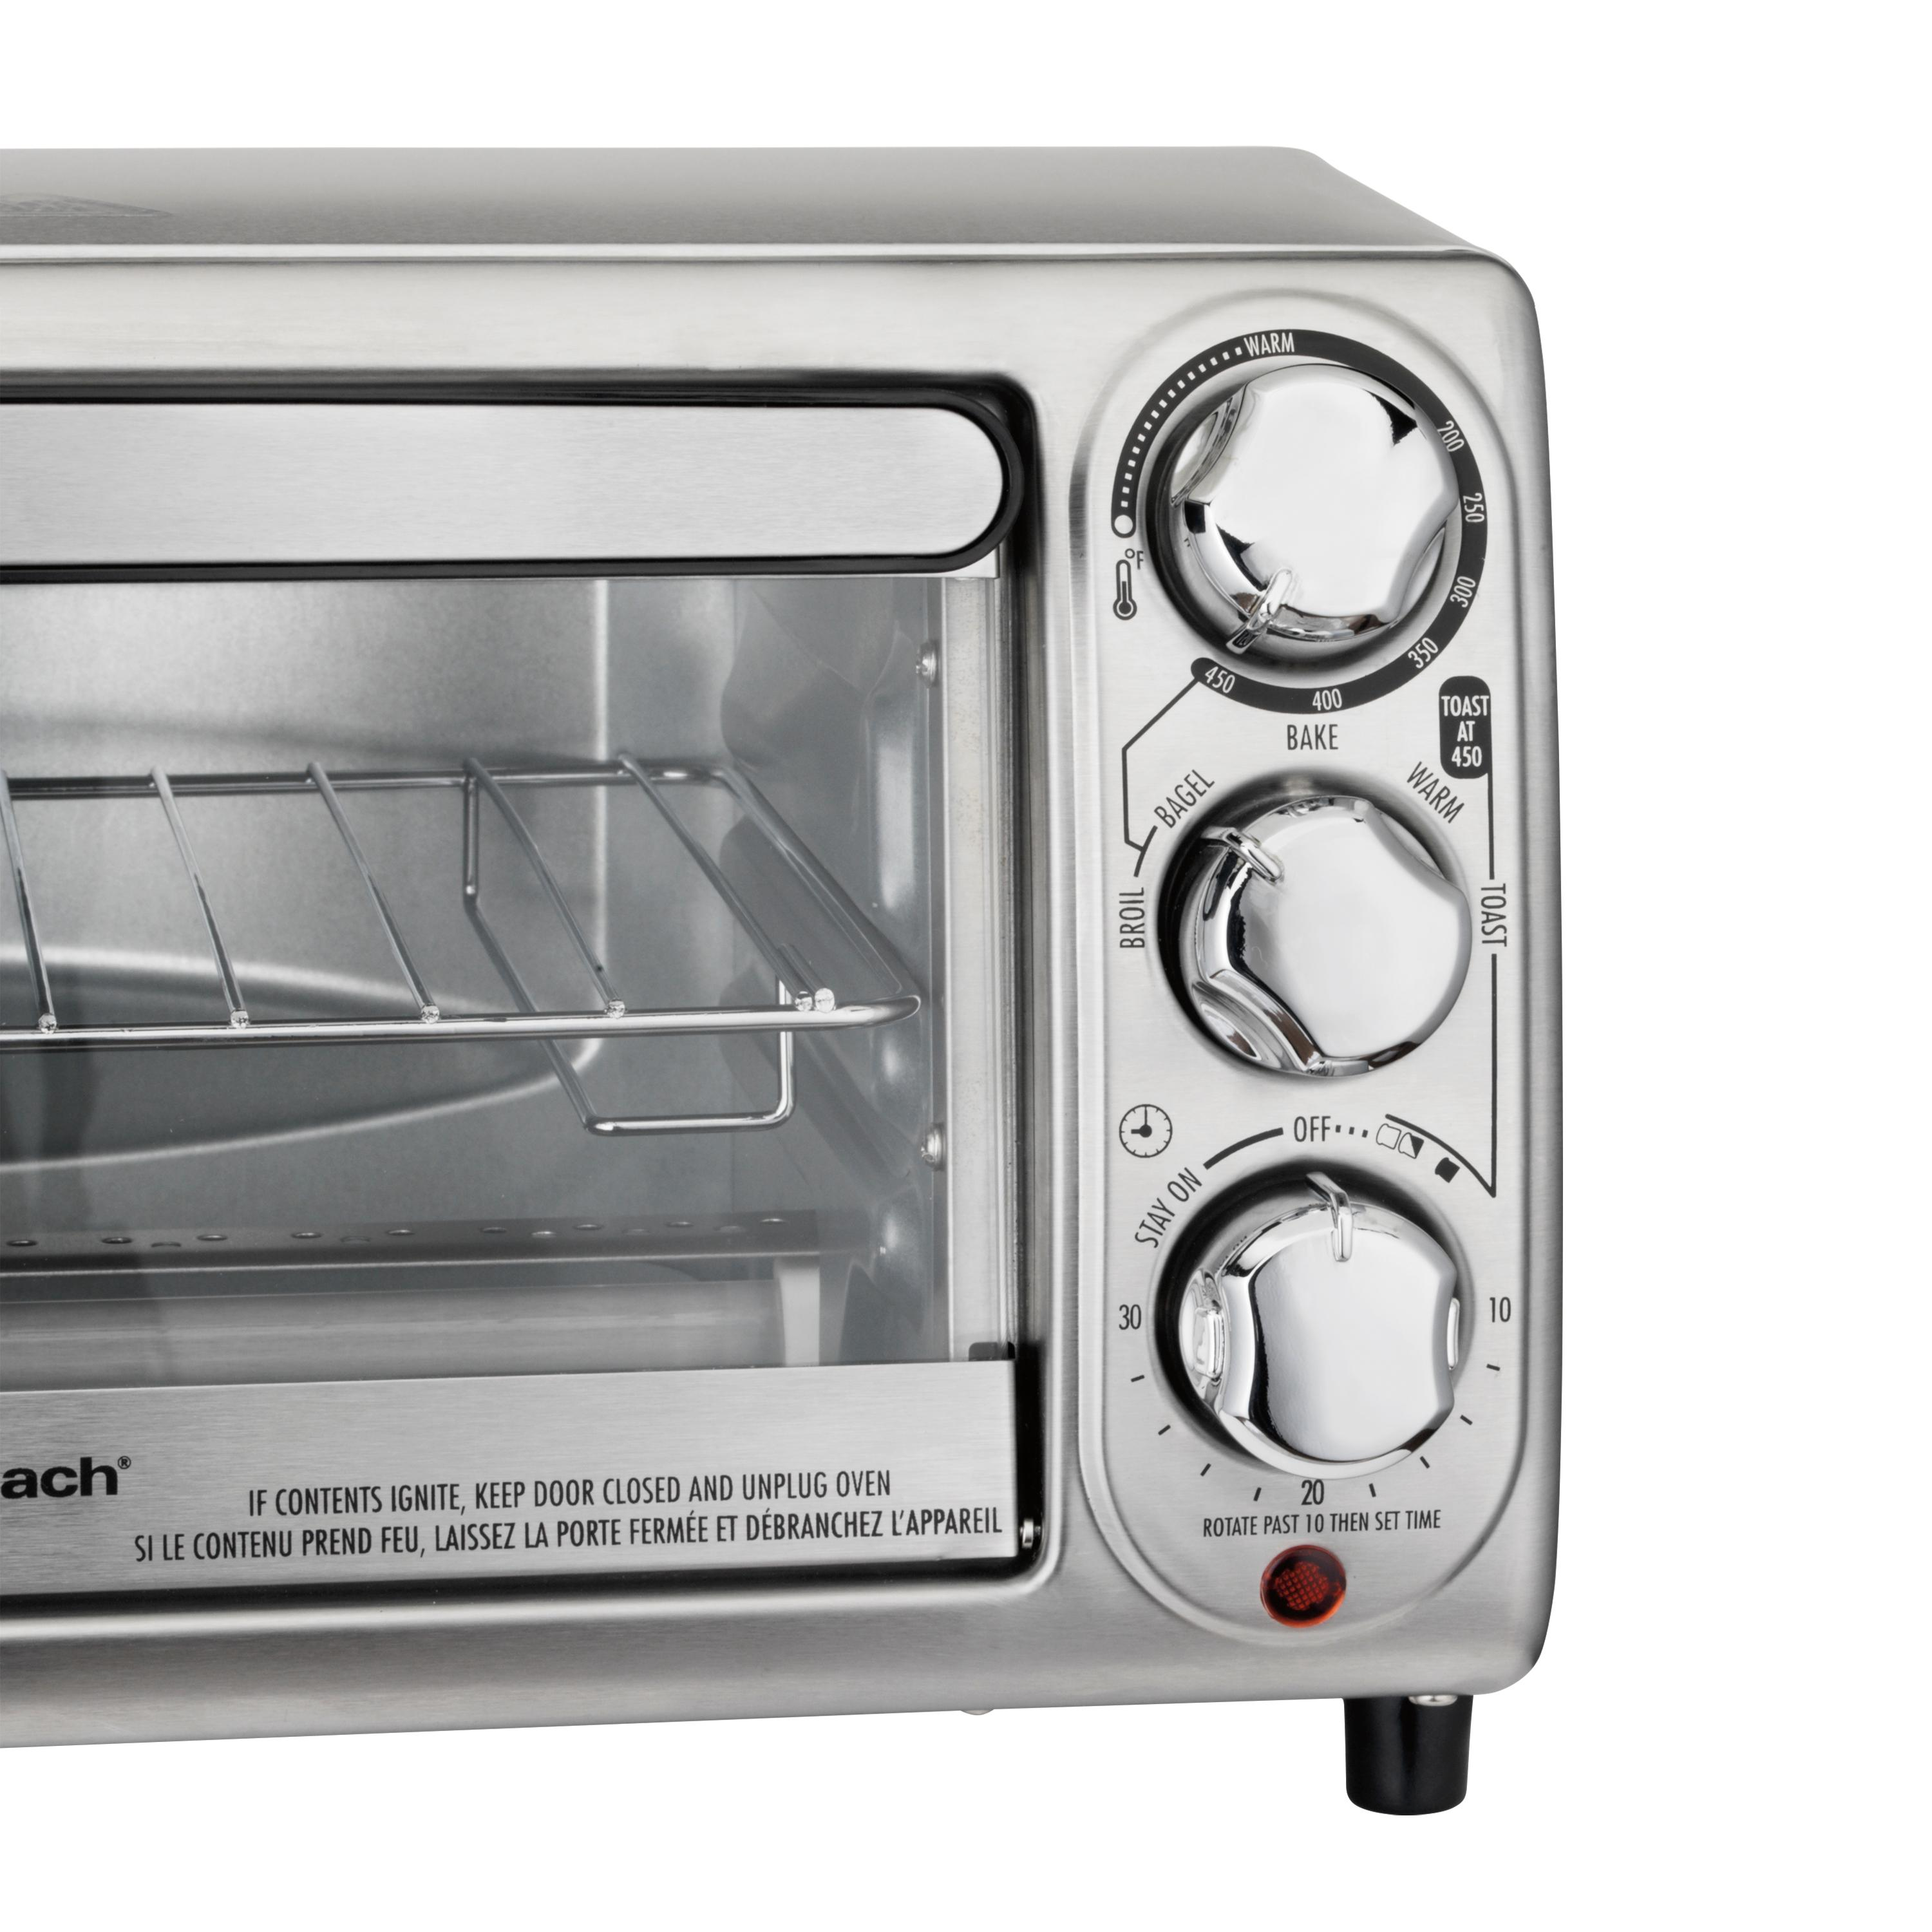 kitchenaid convection view inch ovens larger dp countertop toaster amazon com compact